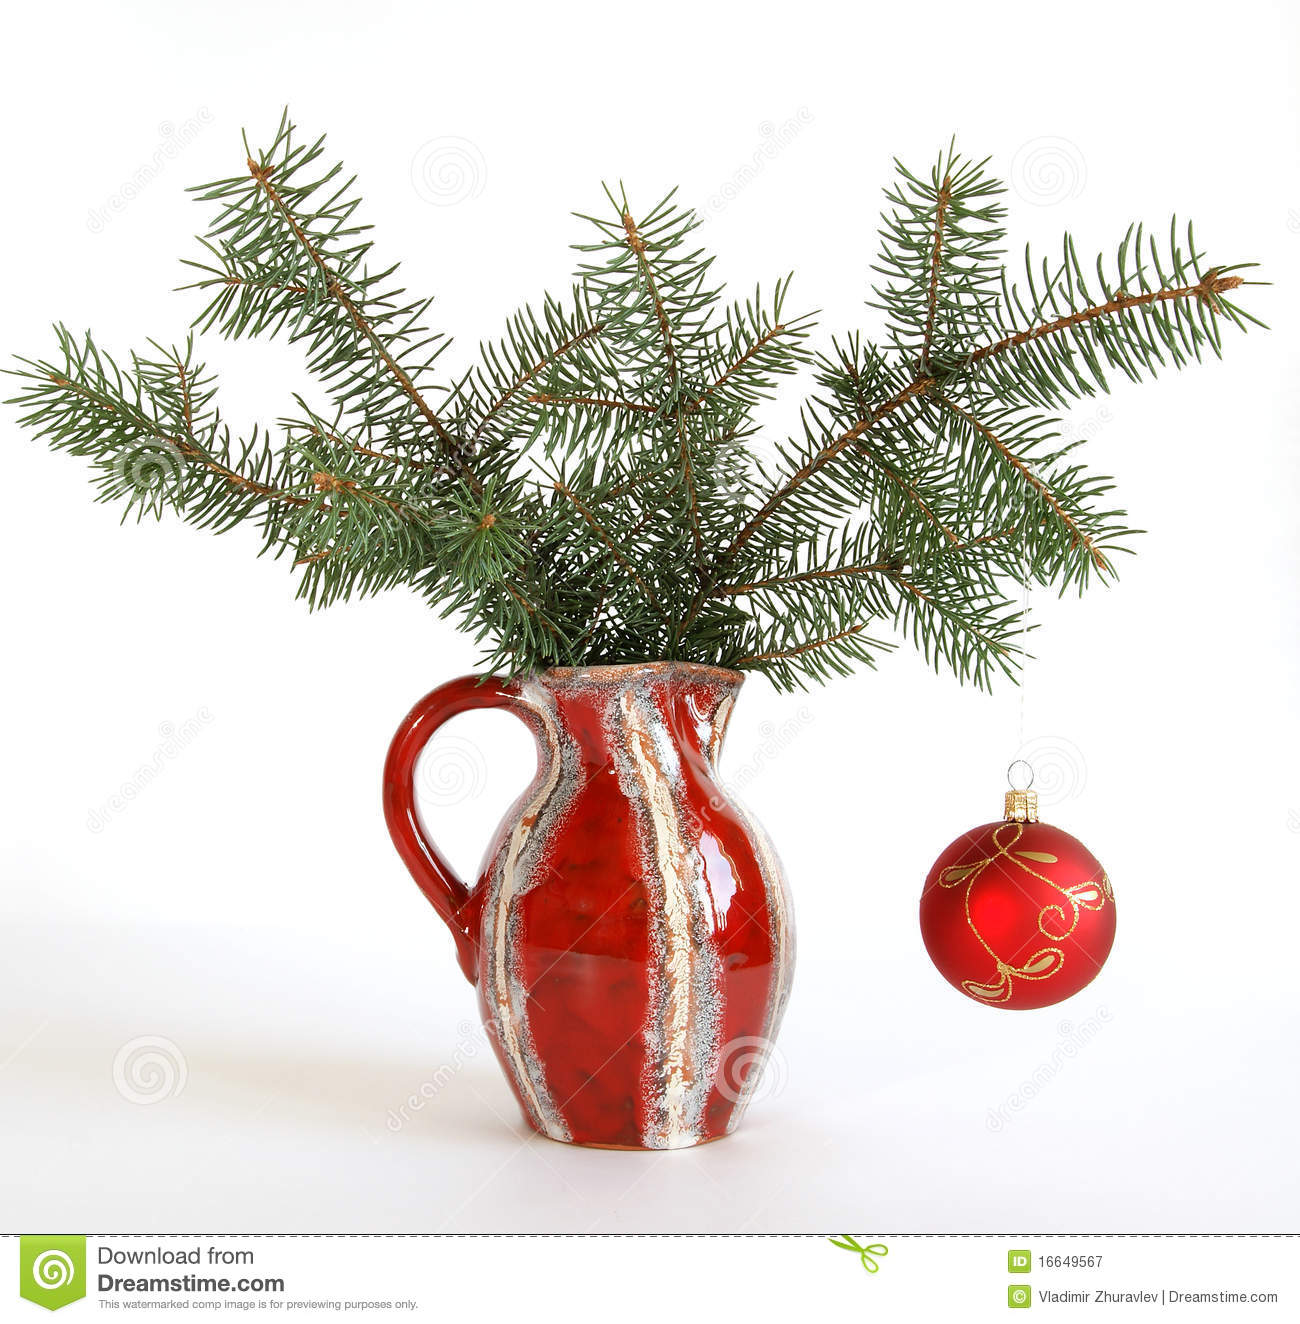 christmas decoration in colored glass vase - How To Decorate Glass Vases For Christmas